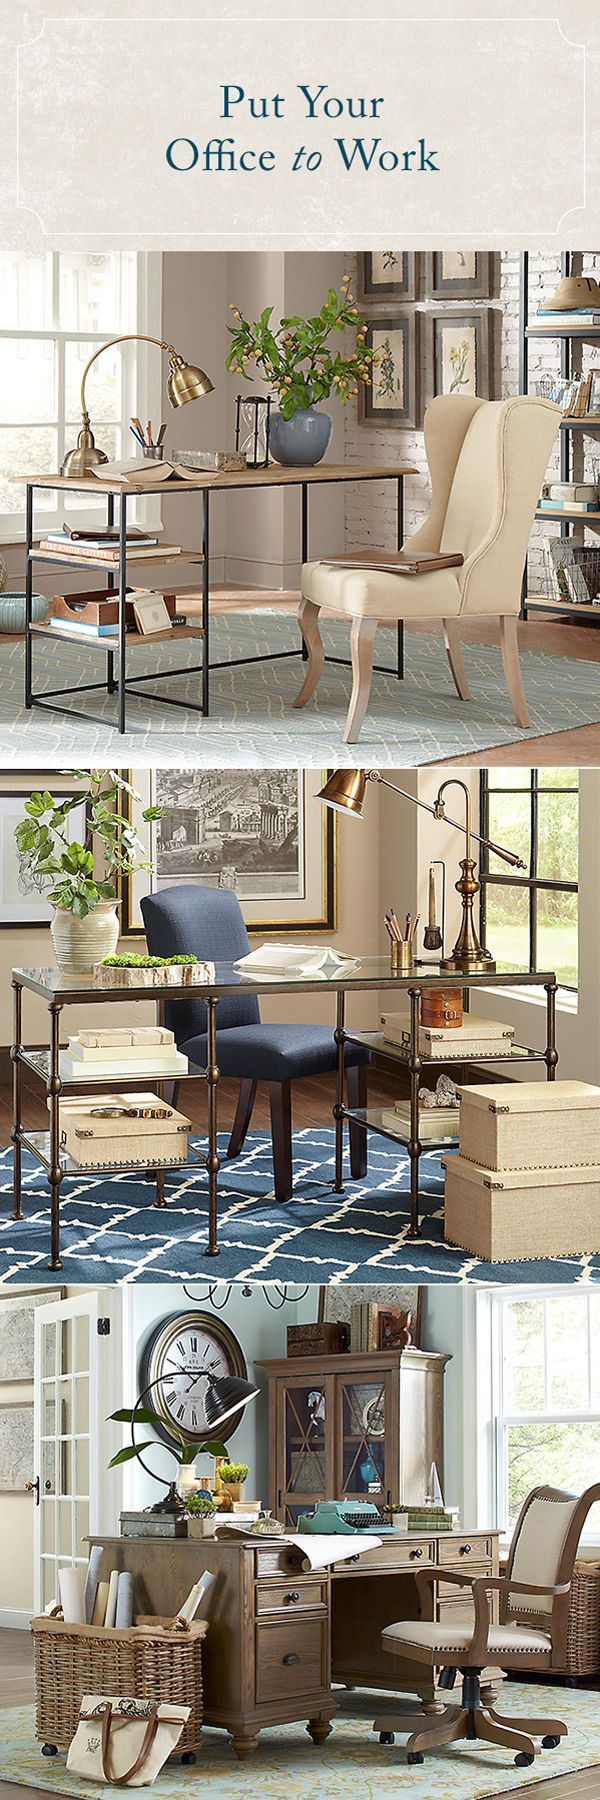 """There's a reason no one's ever coined the phrase """"cubicle-chic."""" For a home office that really works, create a dedicated area that you can fill with functional (and stylish!) furniture. Desks that multitask as writing and storage spaces are key, and a comfy chair is a reward in itself when you're working long hours. Shop these home office necessities and more at Birch Lane."""